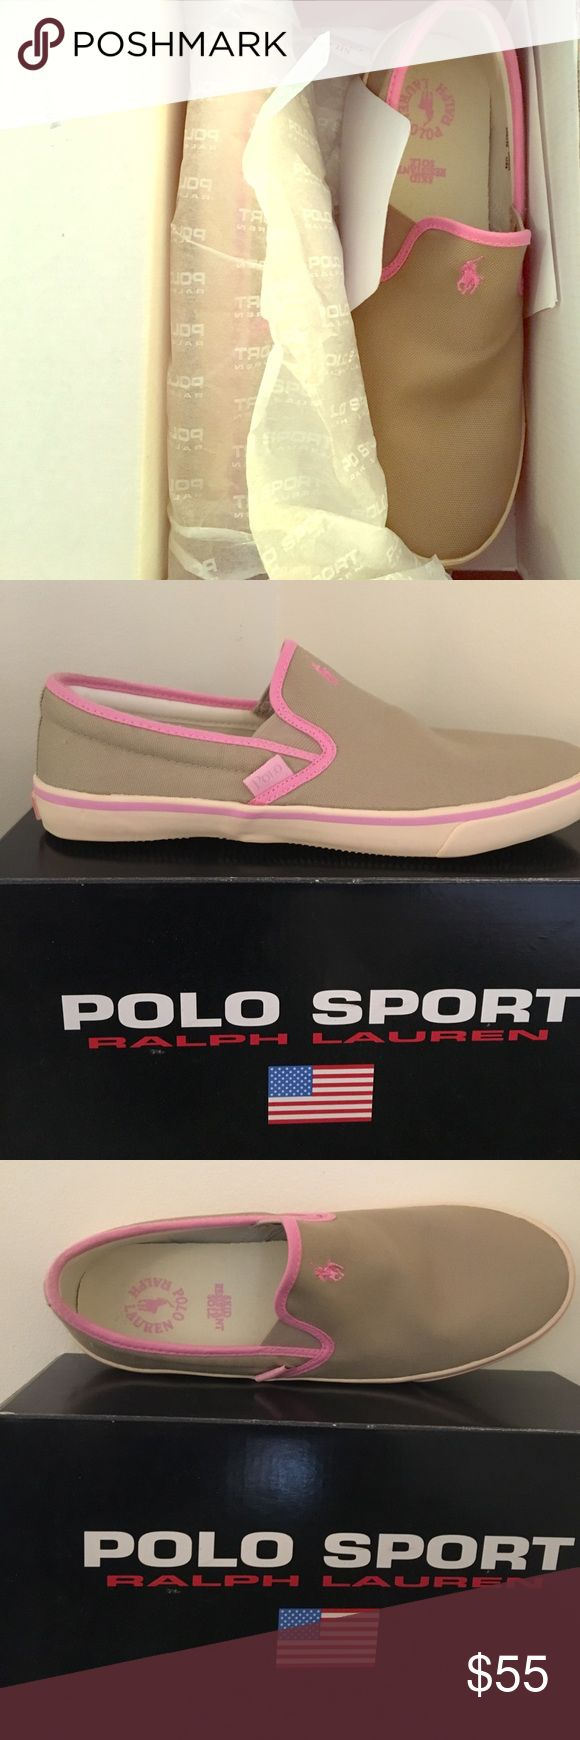 Polo Sport Ralph Lauren Wansheim Canvas Boat Shoe Brand New In Box! Never Worn! Khaki & Pink canvas slip on boat shoe. Great for a day at the beach or a day out on the boat. Skid resistant sole! Polo Sport Ralph Lauren Shoes Sneakers